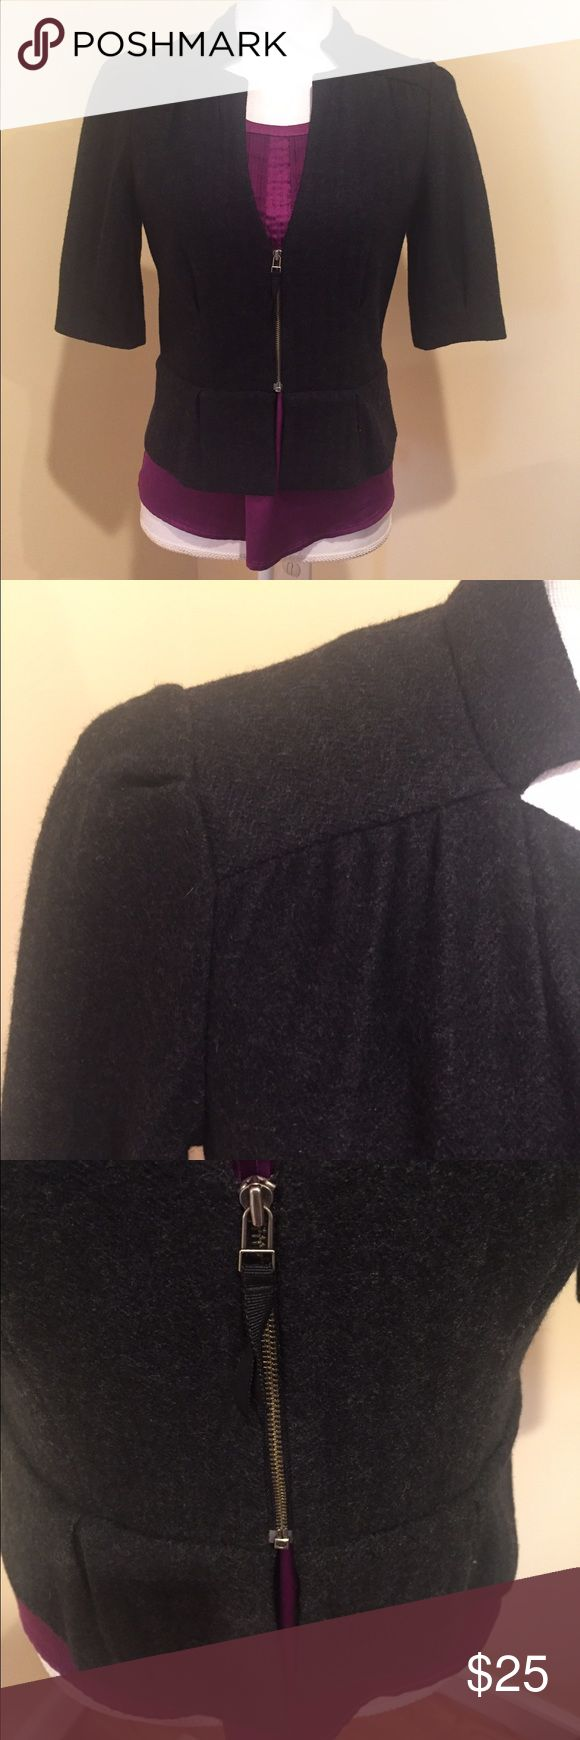 Banana Republic Charcoal Gray Jacket Love, love this jacket that can be worn to work with nice pants or a pencil skirt or casually with jeans! Excellent condition. Banana Republic Jackets & Coats Blazers